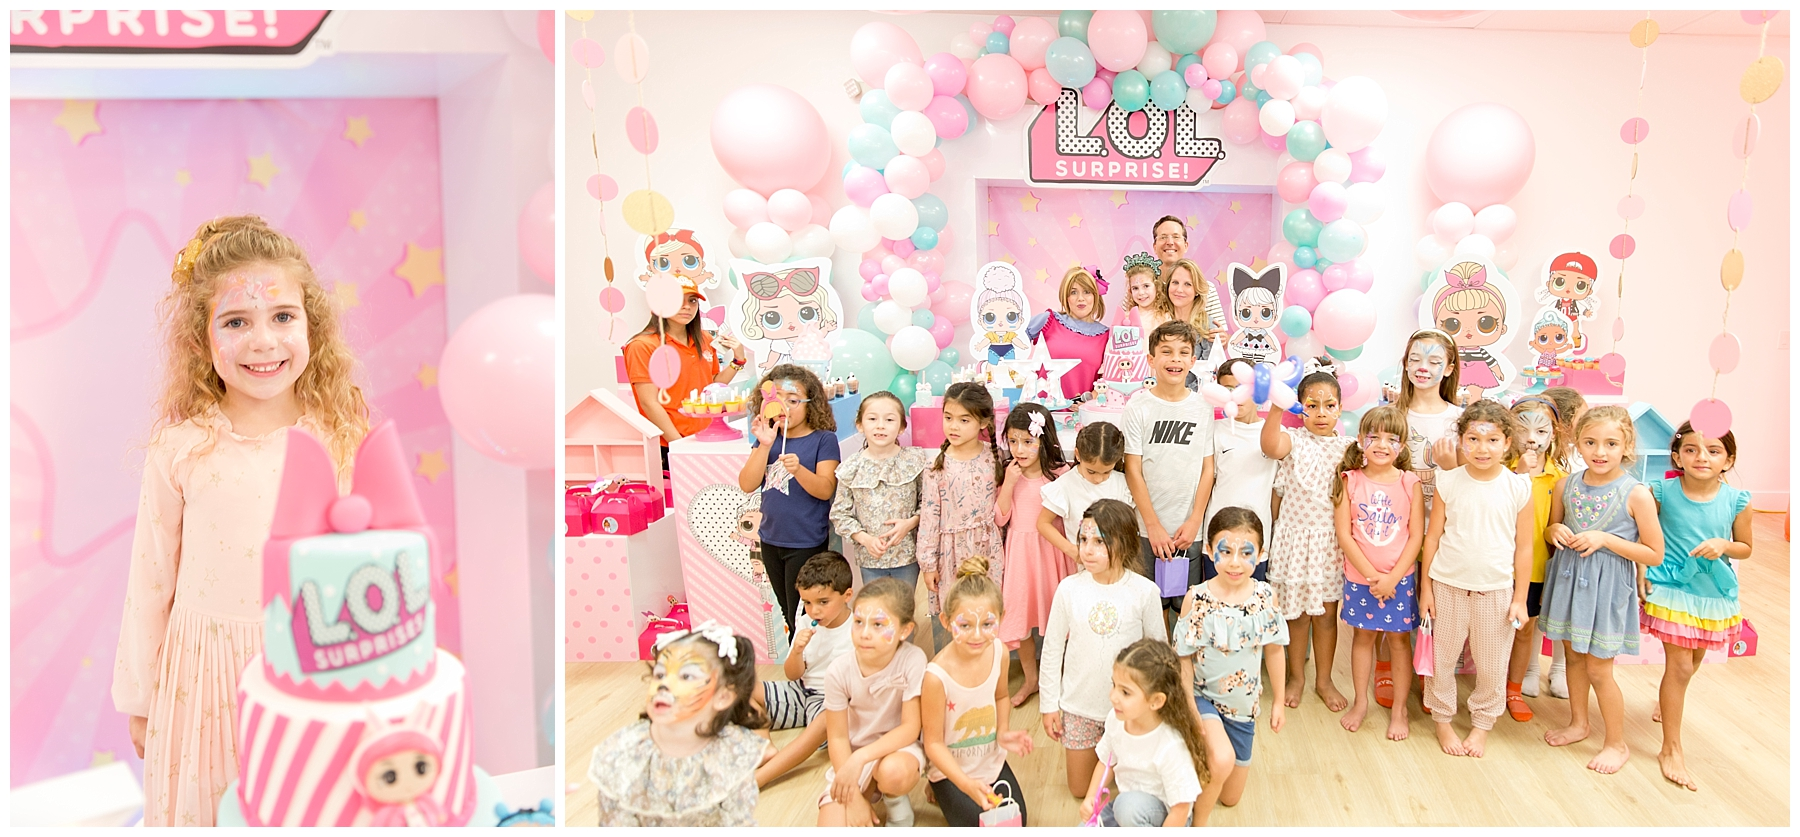 L.O.L. Surprise birthday theme at Kubo Play Kendall